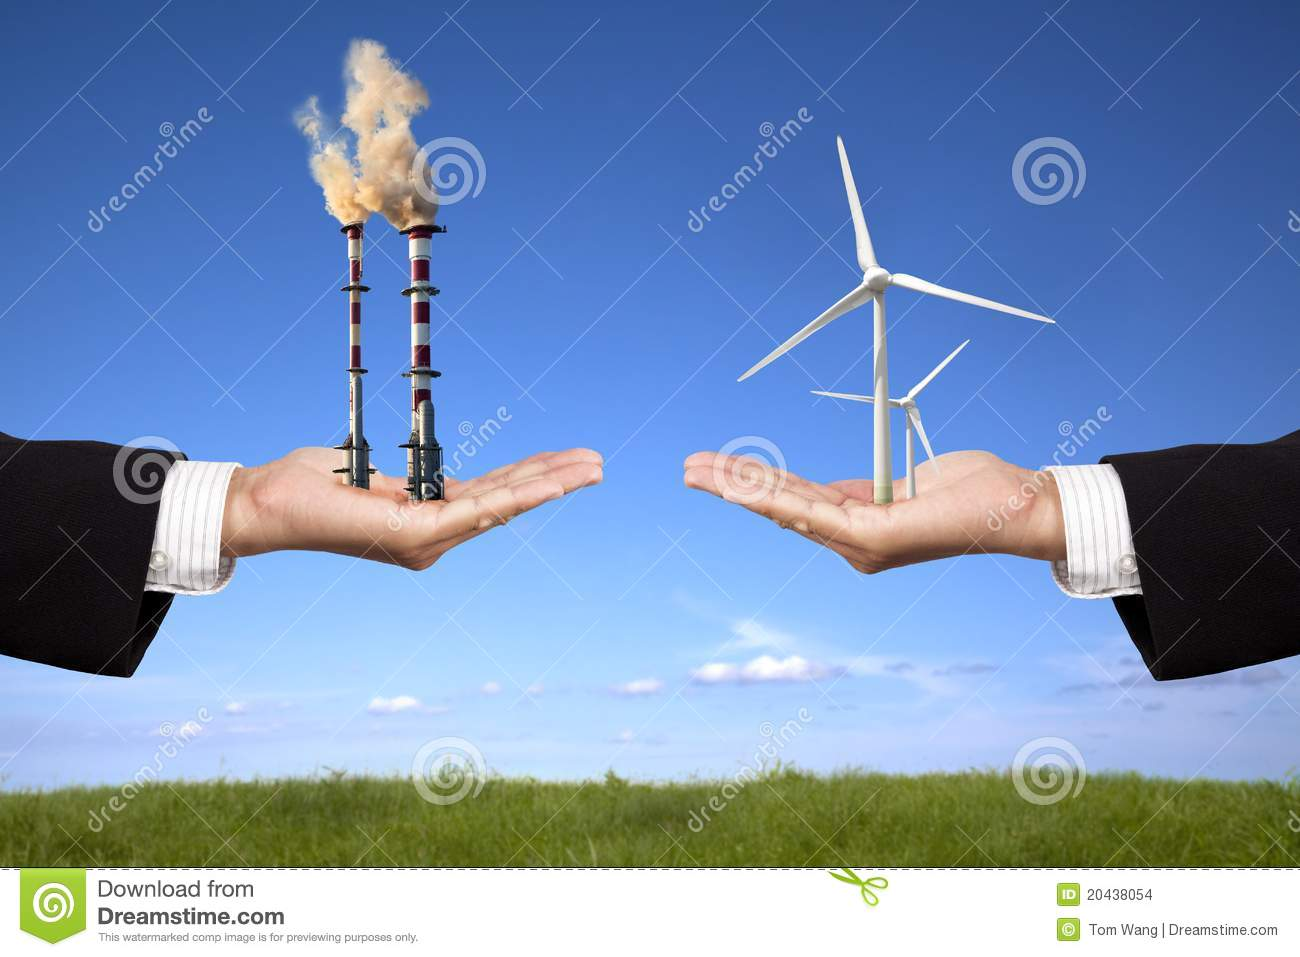 60 Clipart Pollution And Clean Energy Concept Stock Images - Image